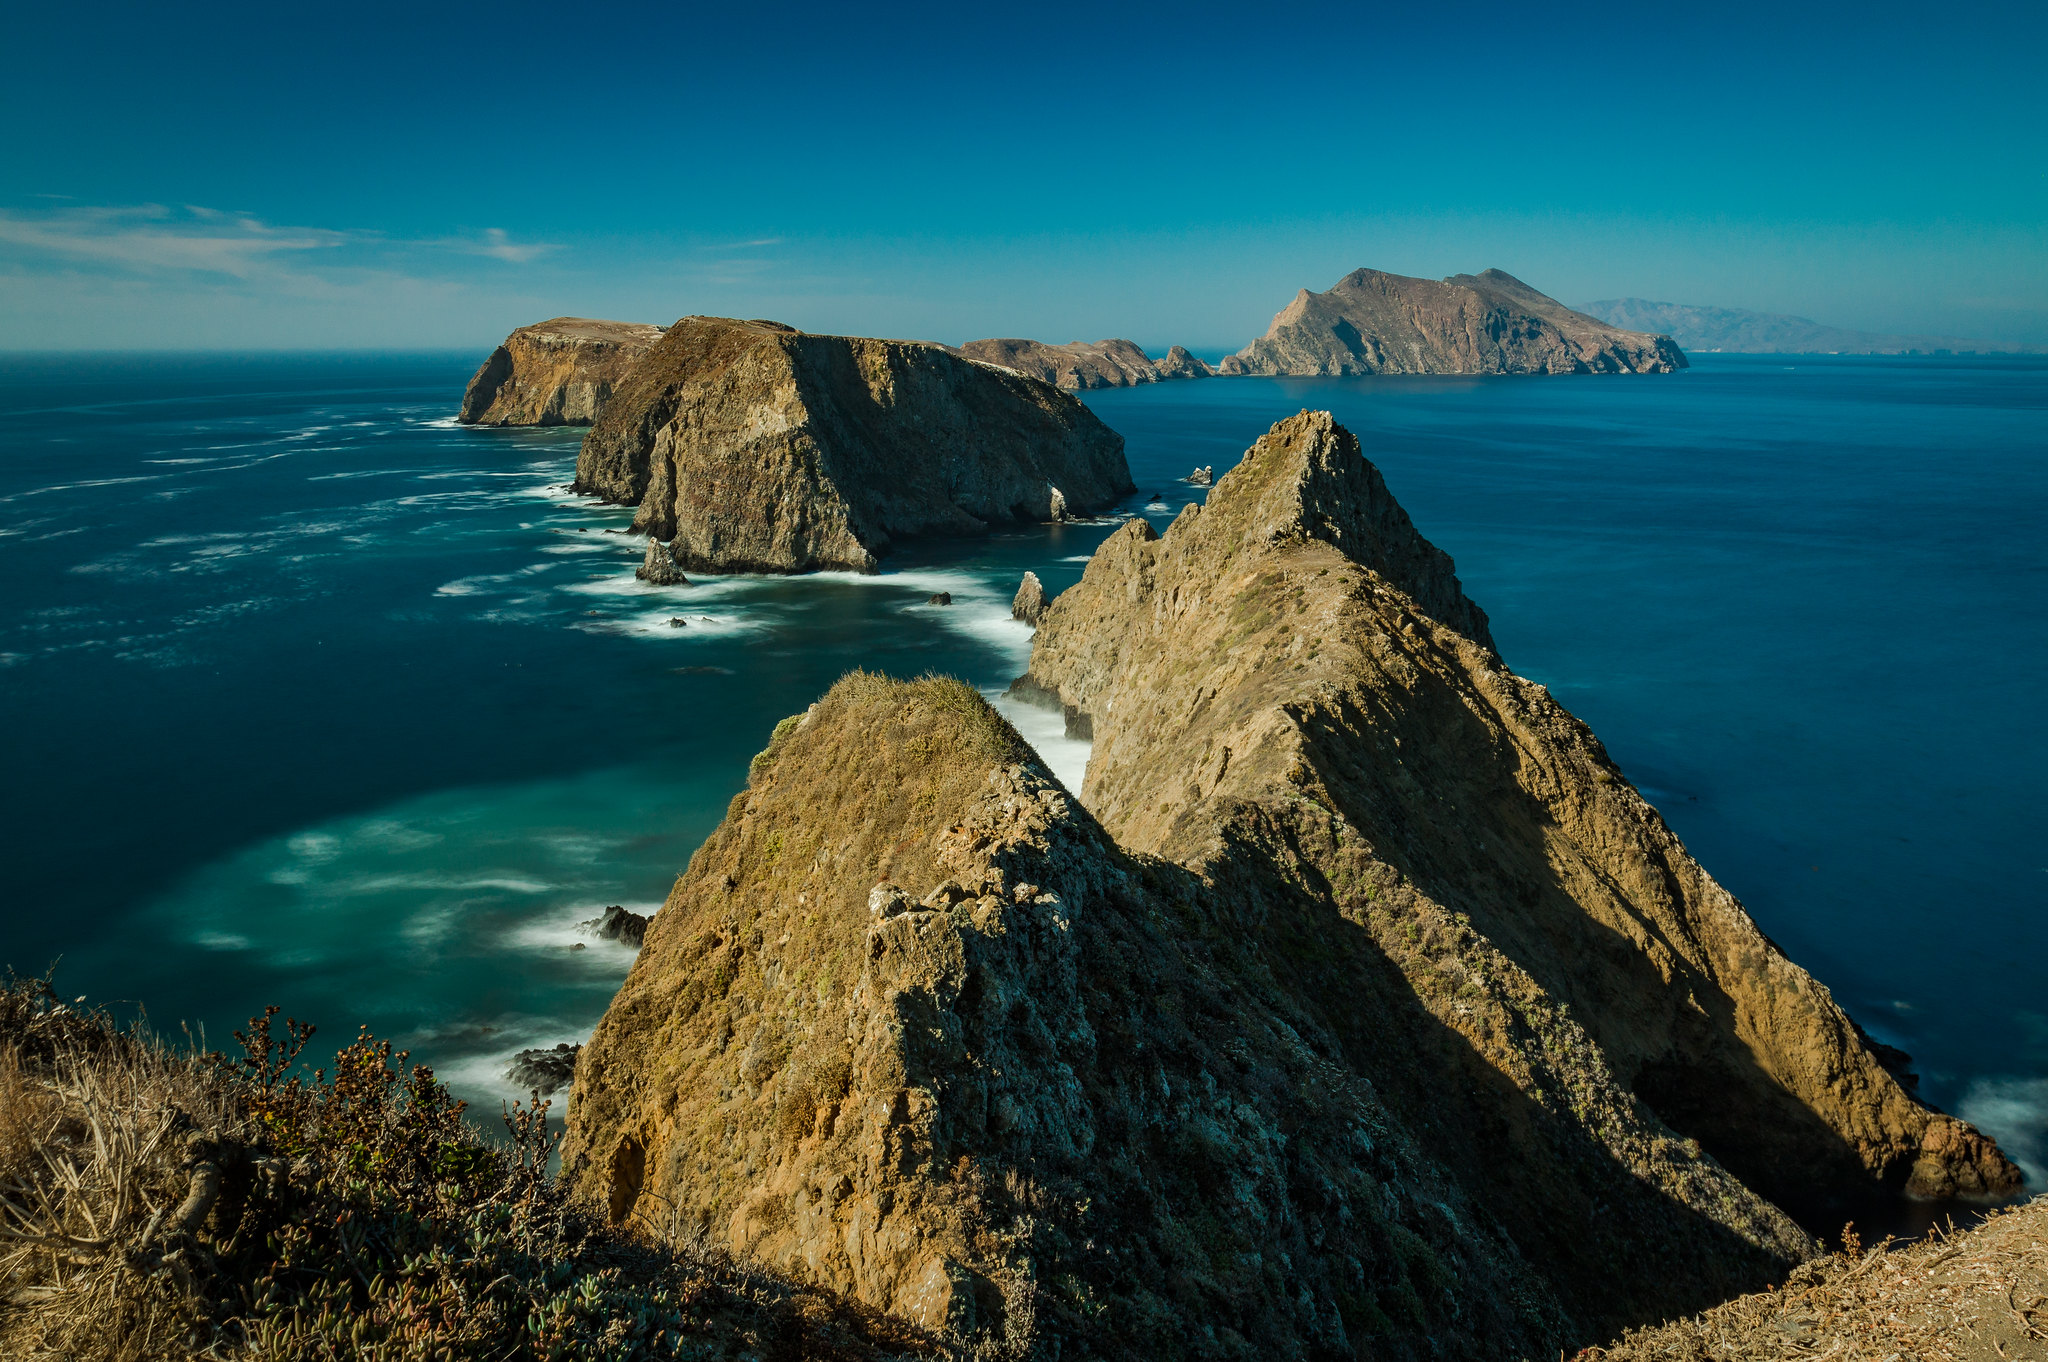 Popular National Park in California-Channel Islands National Park